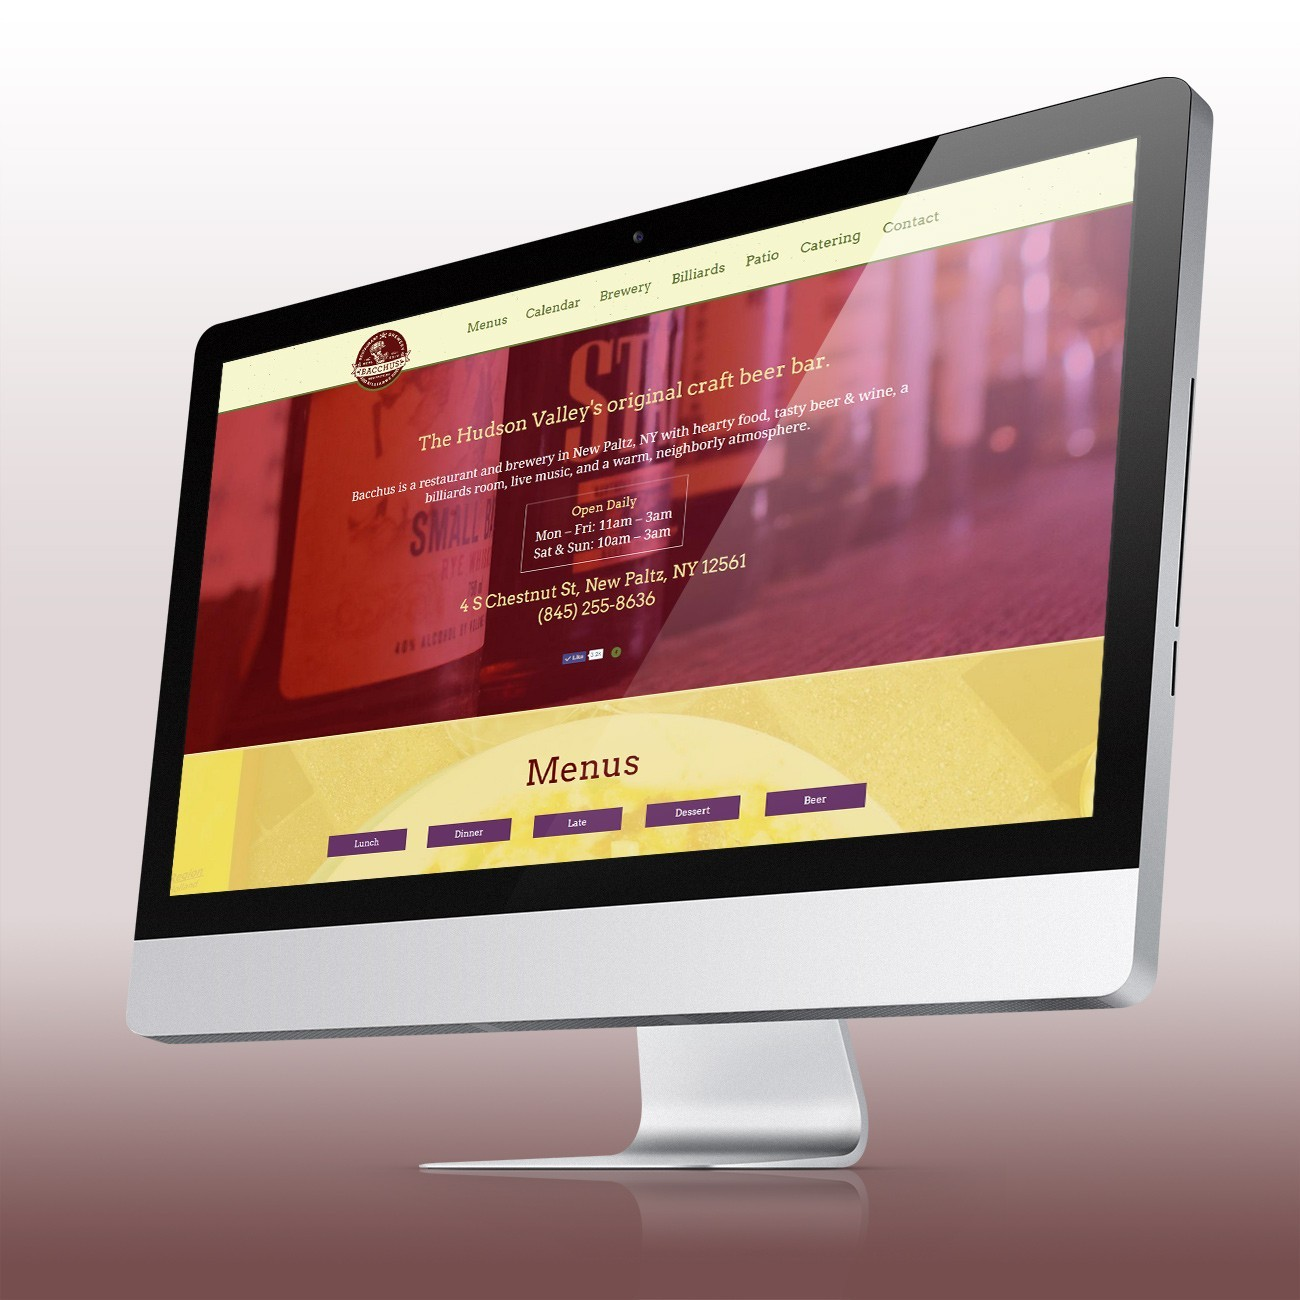 Bacchus Website, designed by Query Creative in the Hudson Valley